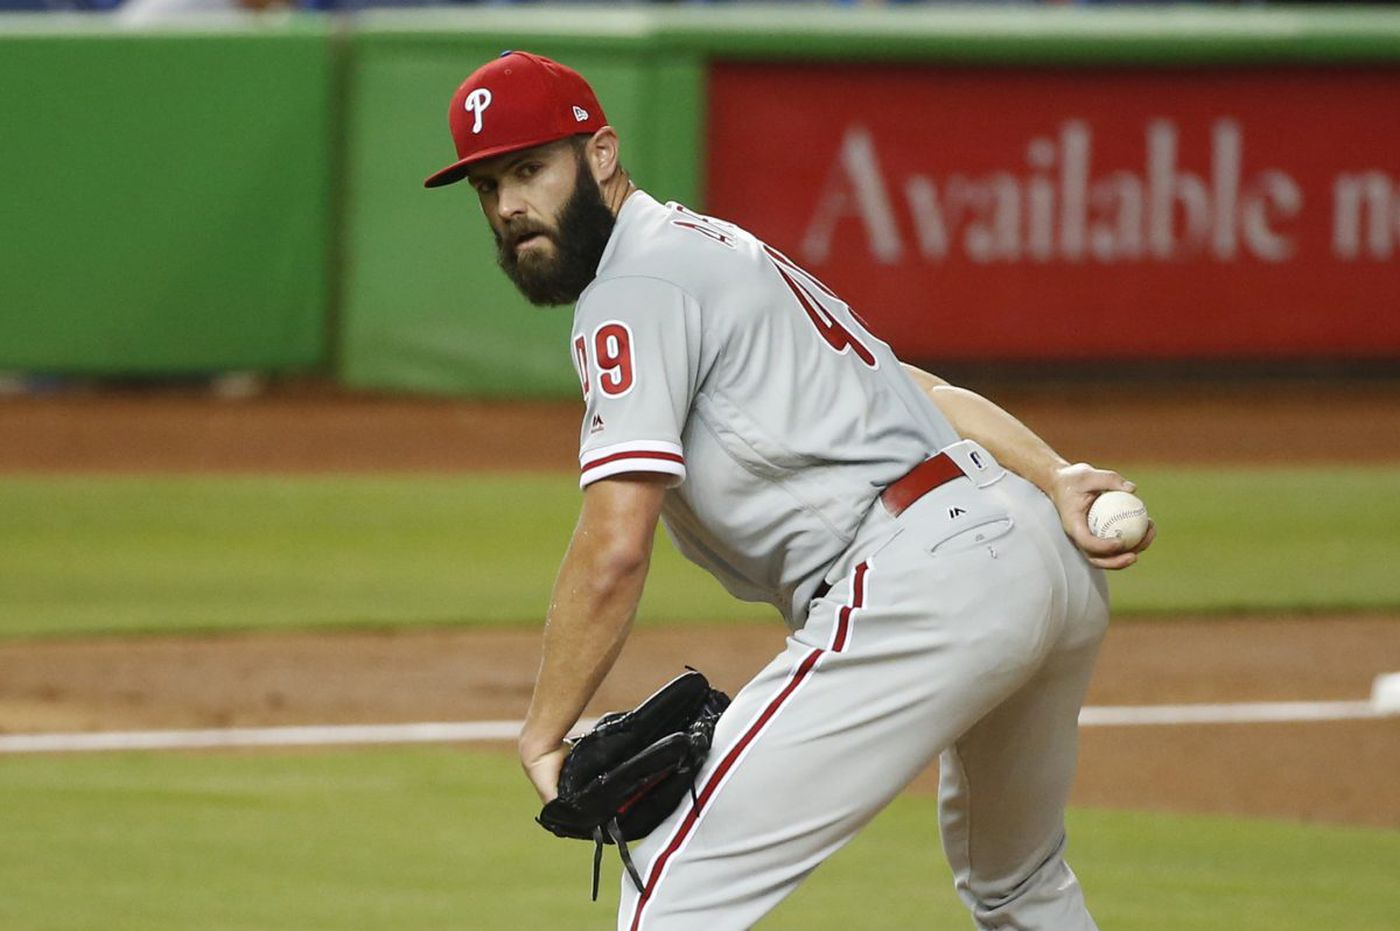 Injuries lead to auditions for Phillies | Extra Innings